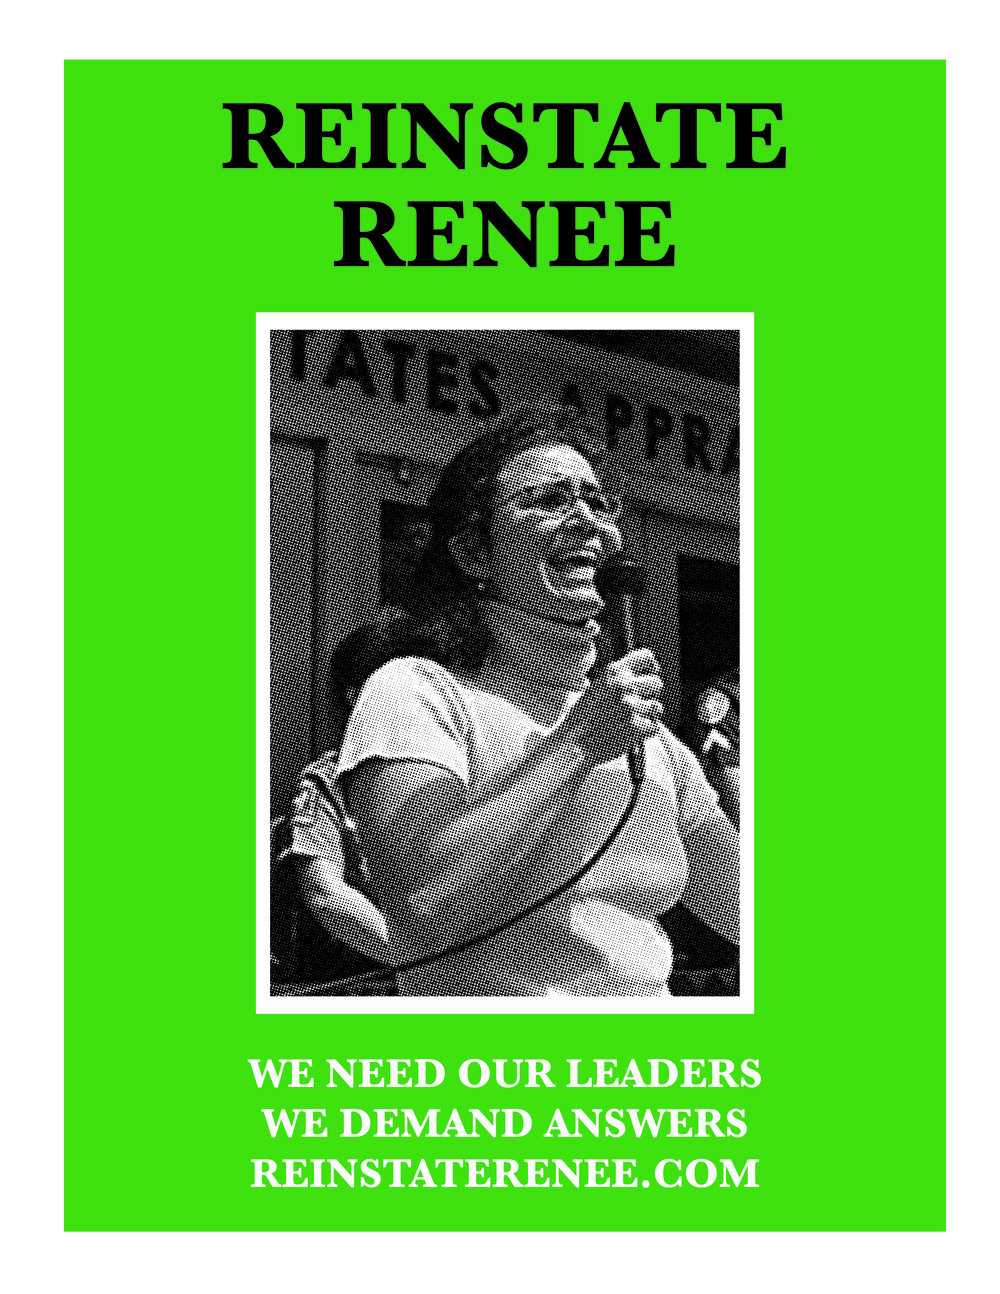 reinstate renee flyer-03.jpg